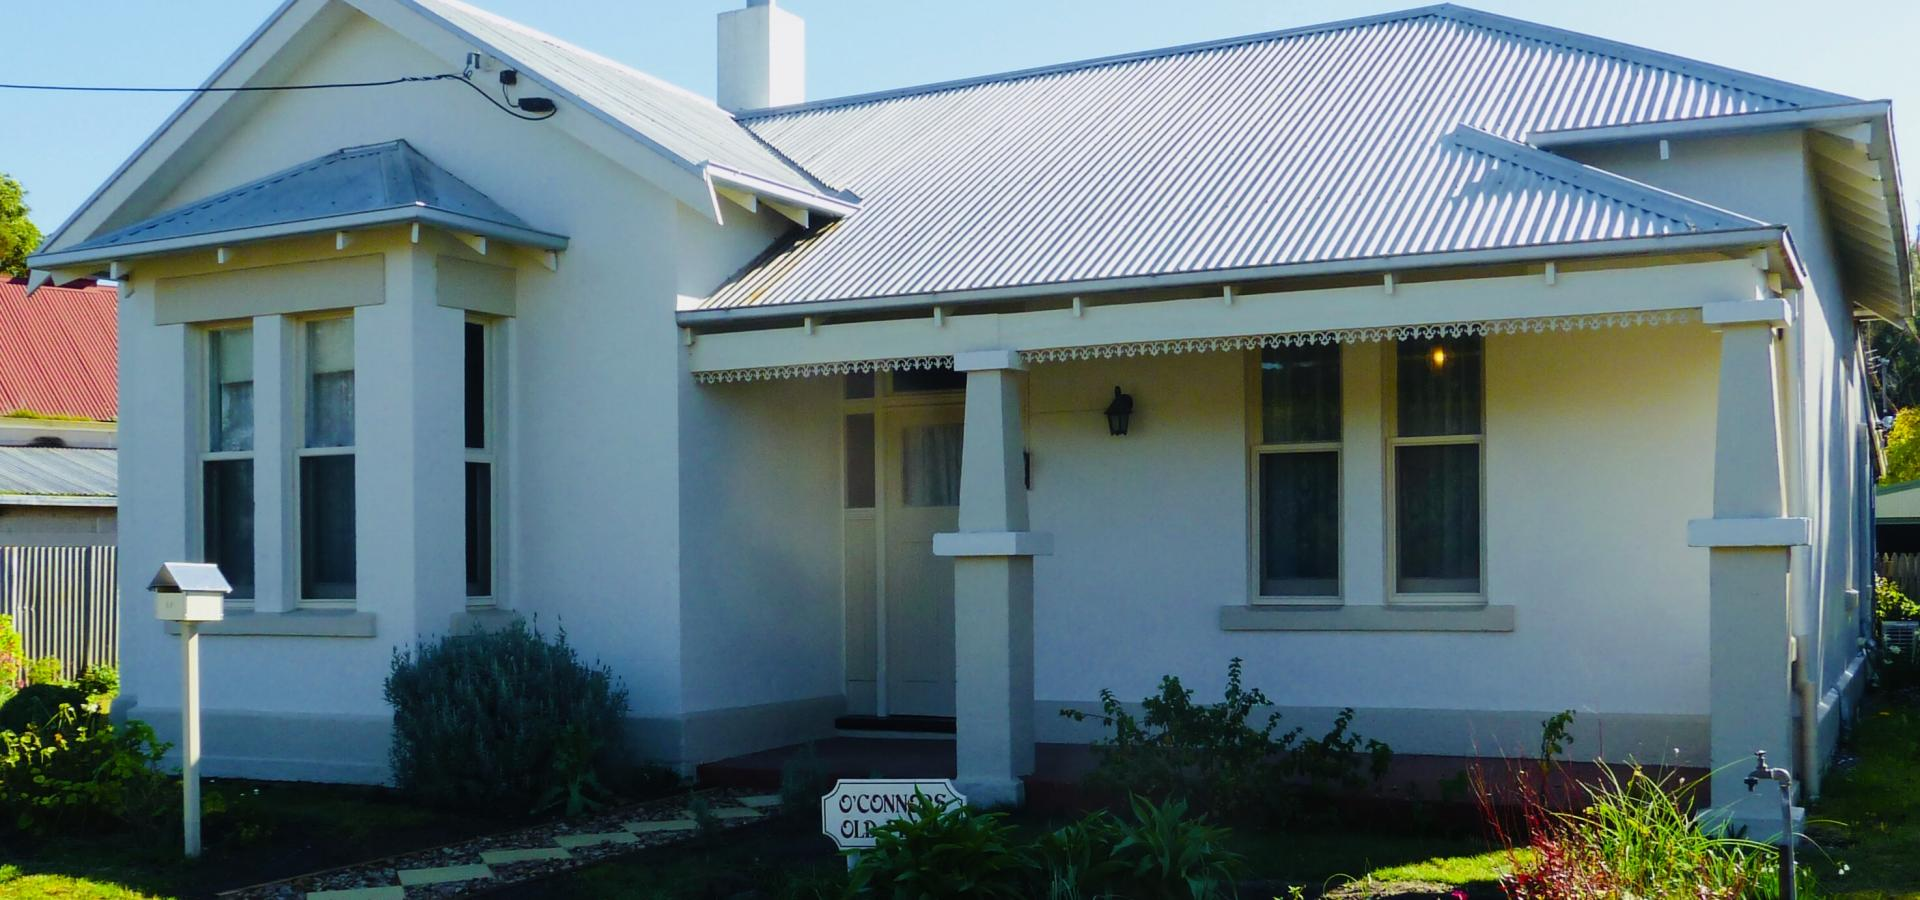 1935 CHARACTER HOME WITH ENORMOUS STREET APPEAL